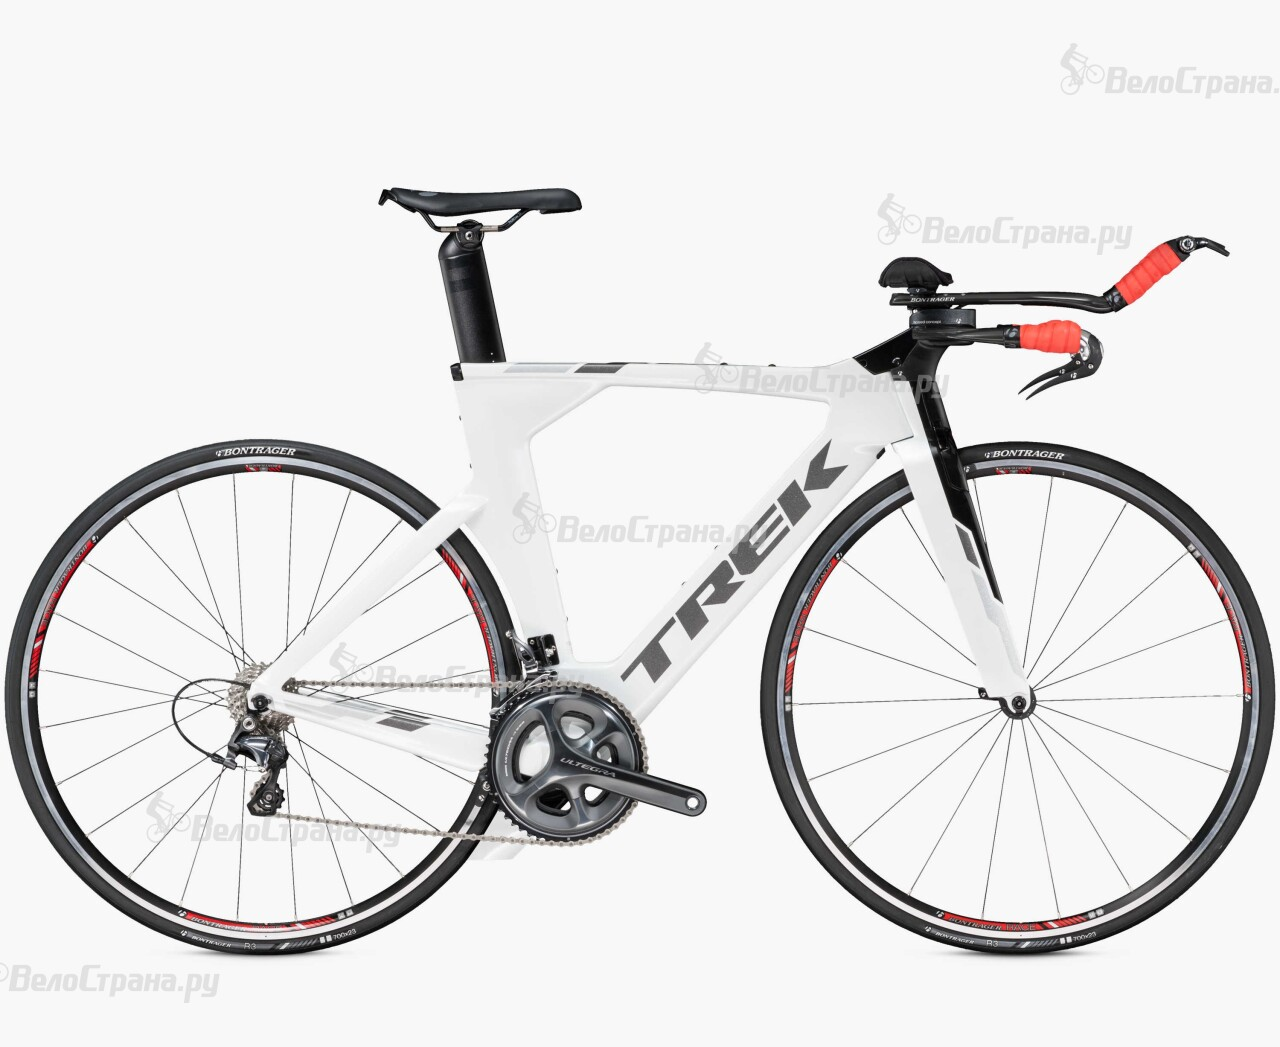 Велосипед Trek Speed Concept 7.5 (2016) concept driven 2sc0435t 2sc0435t2a0 17 new stock